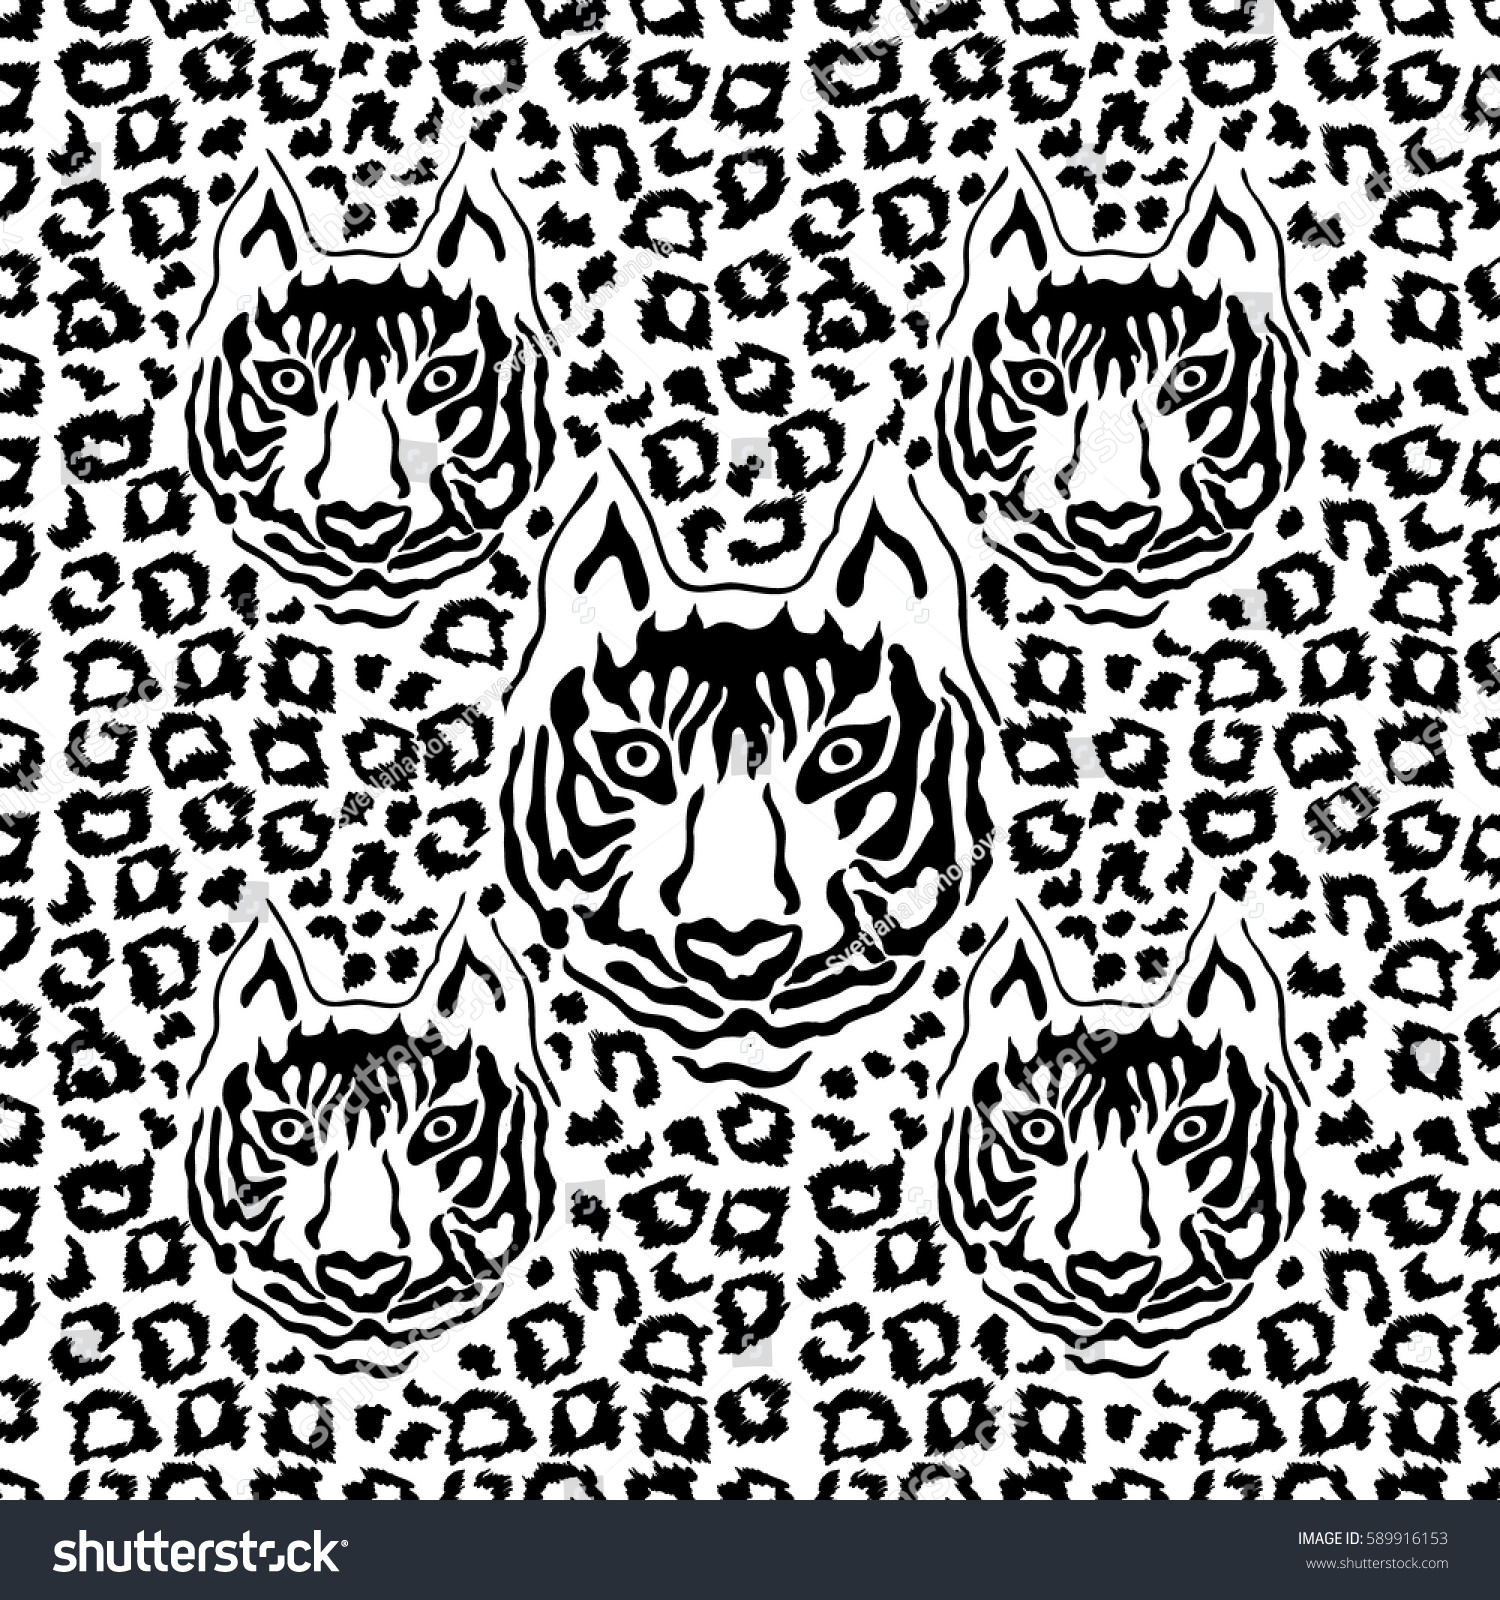 Optical illusion animal print seamless vector pattern with tiger face and leopard spots safari